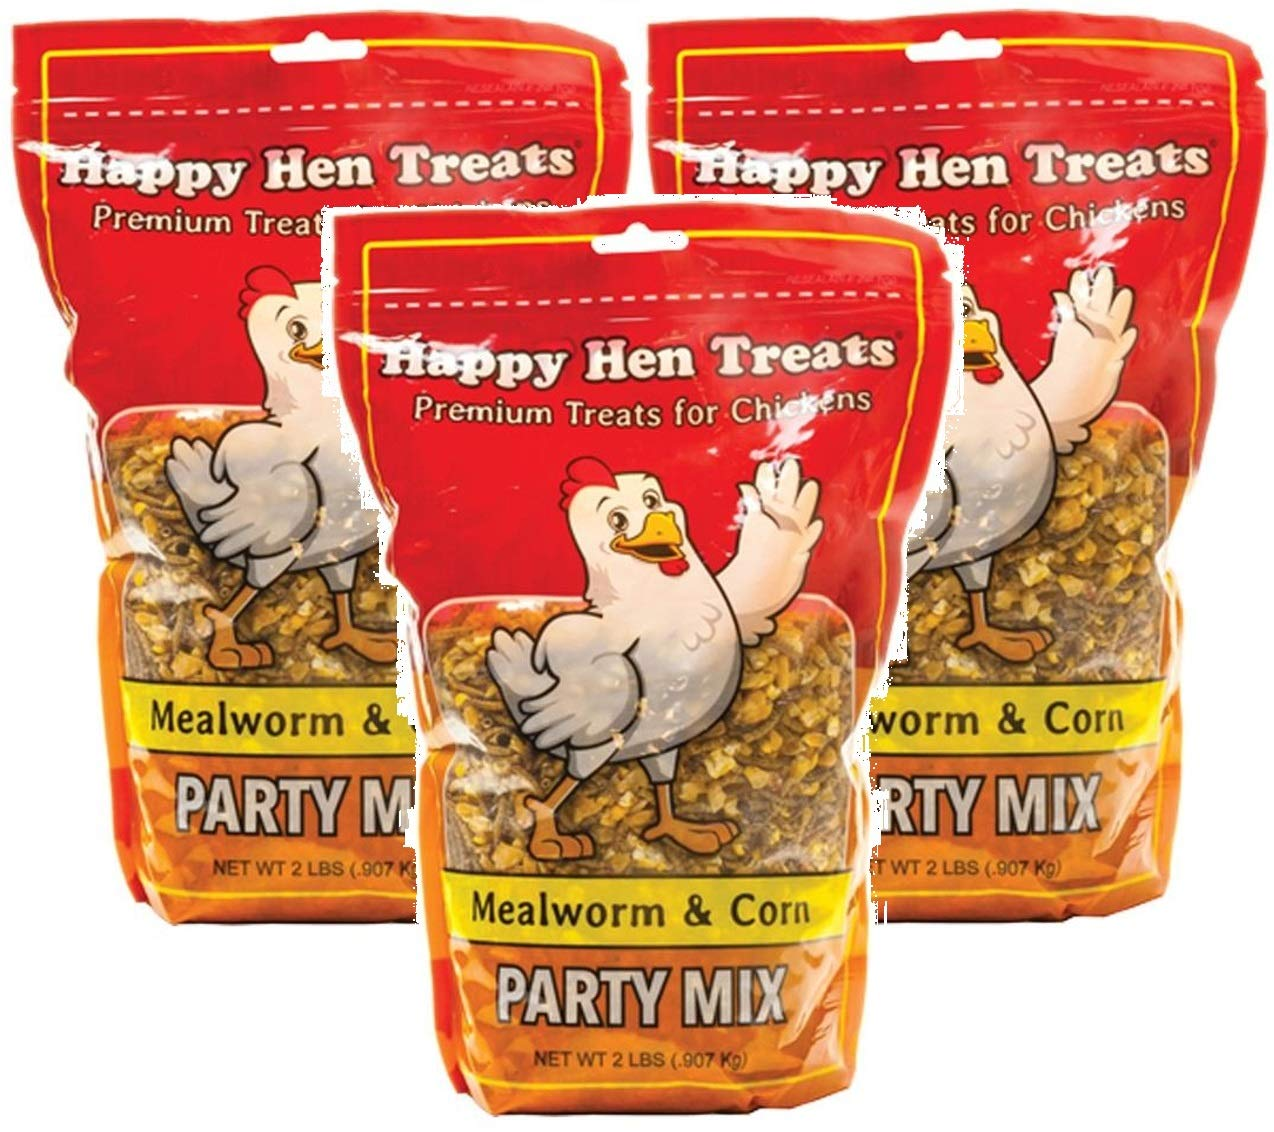 Happy Hen Treats Party Mix Mealworm and Corn, 2-Pound (Pack of 3) by Happy Hen Treats